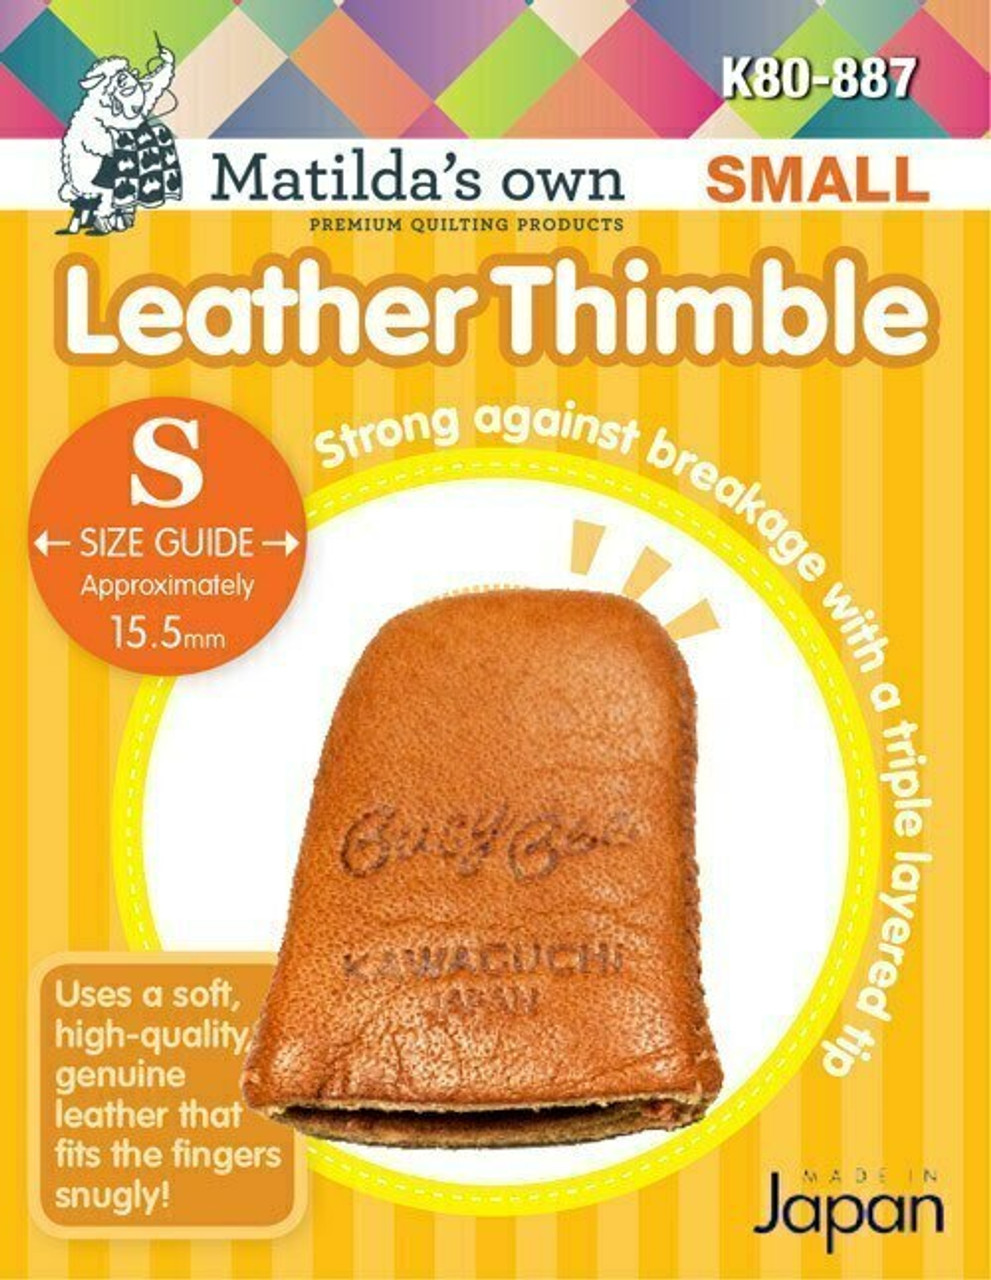 Leather Thimble - Small